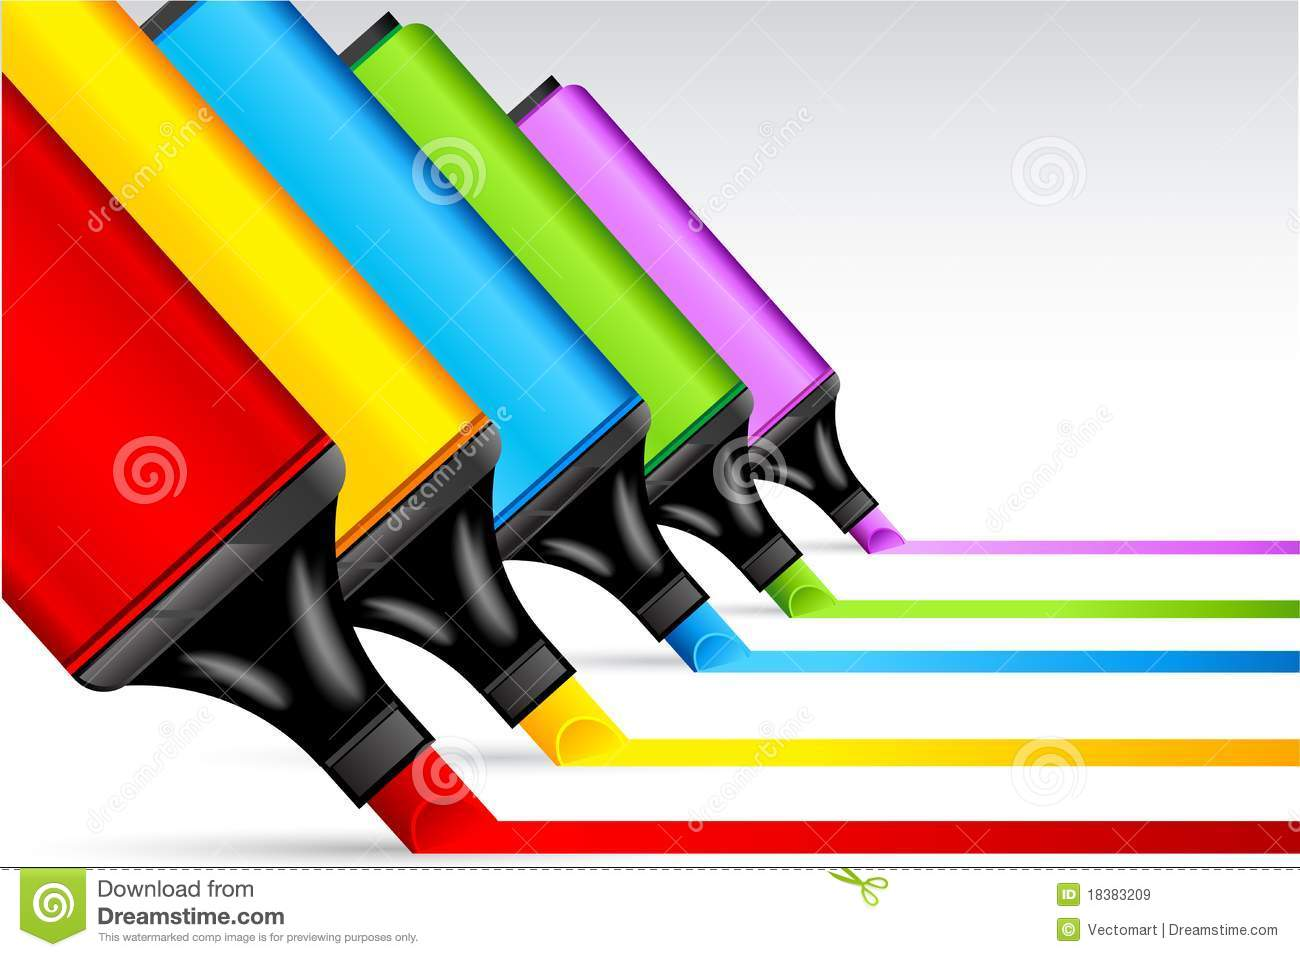 Colorful Highlighter Pen Royalty Free Stock Images - Image: 18383209